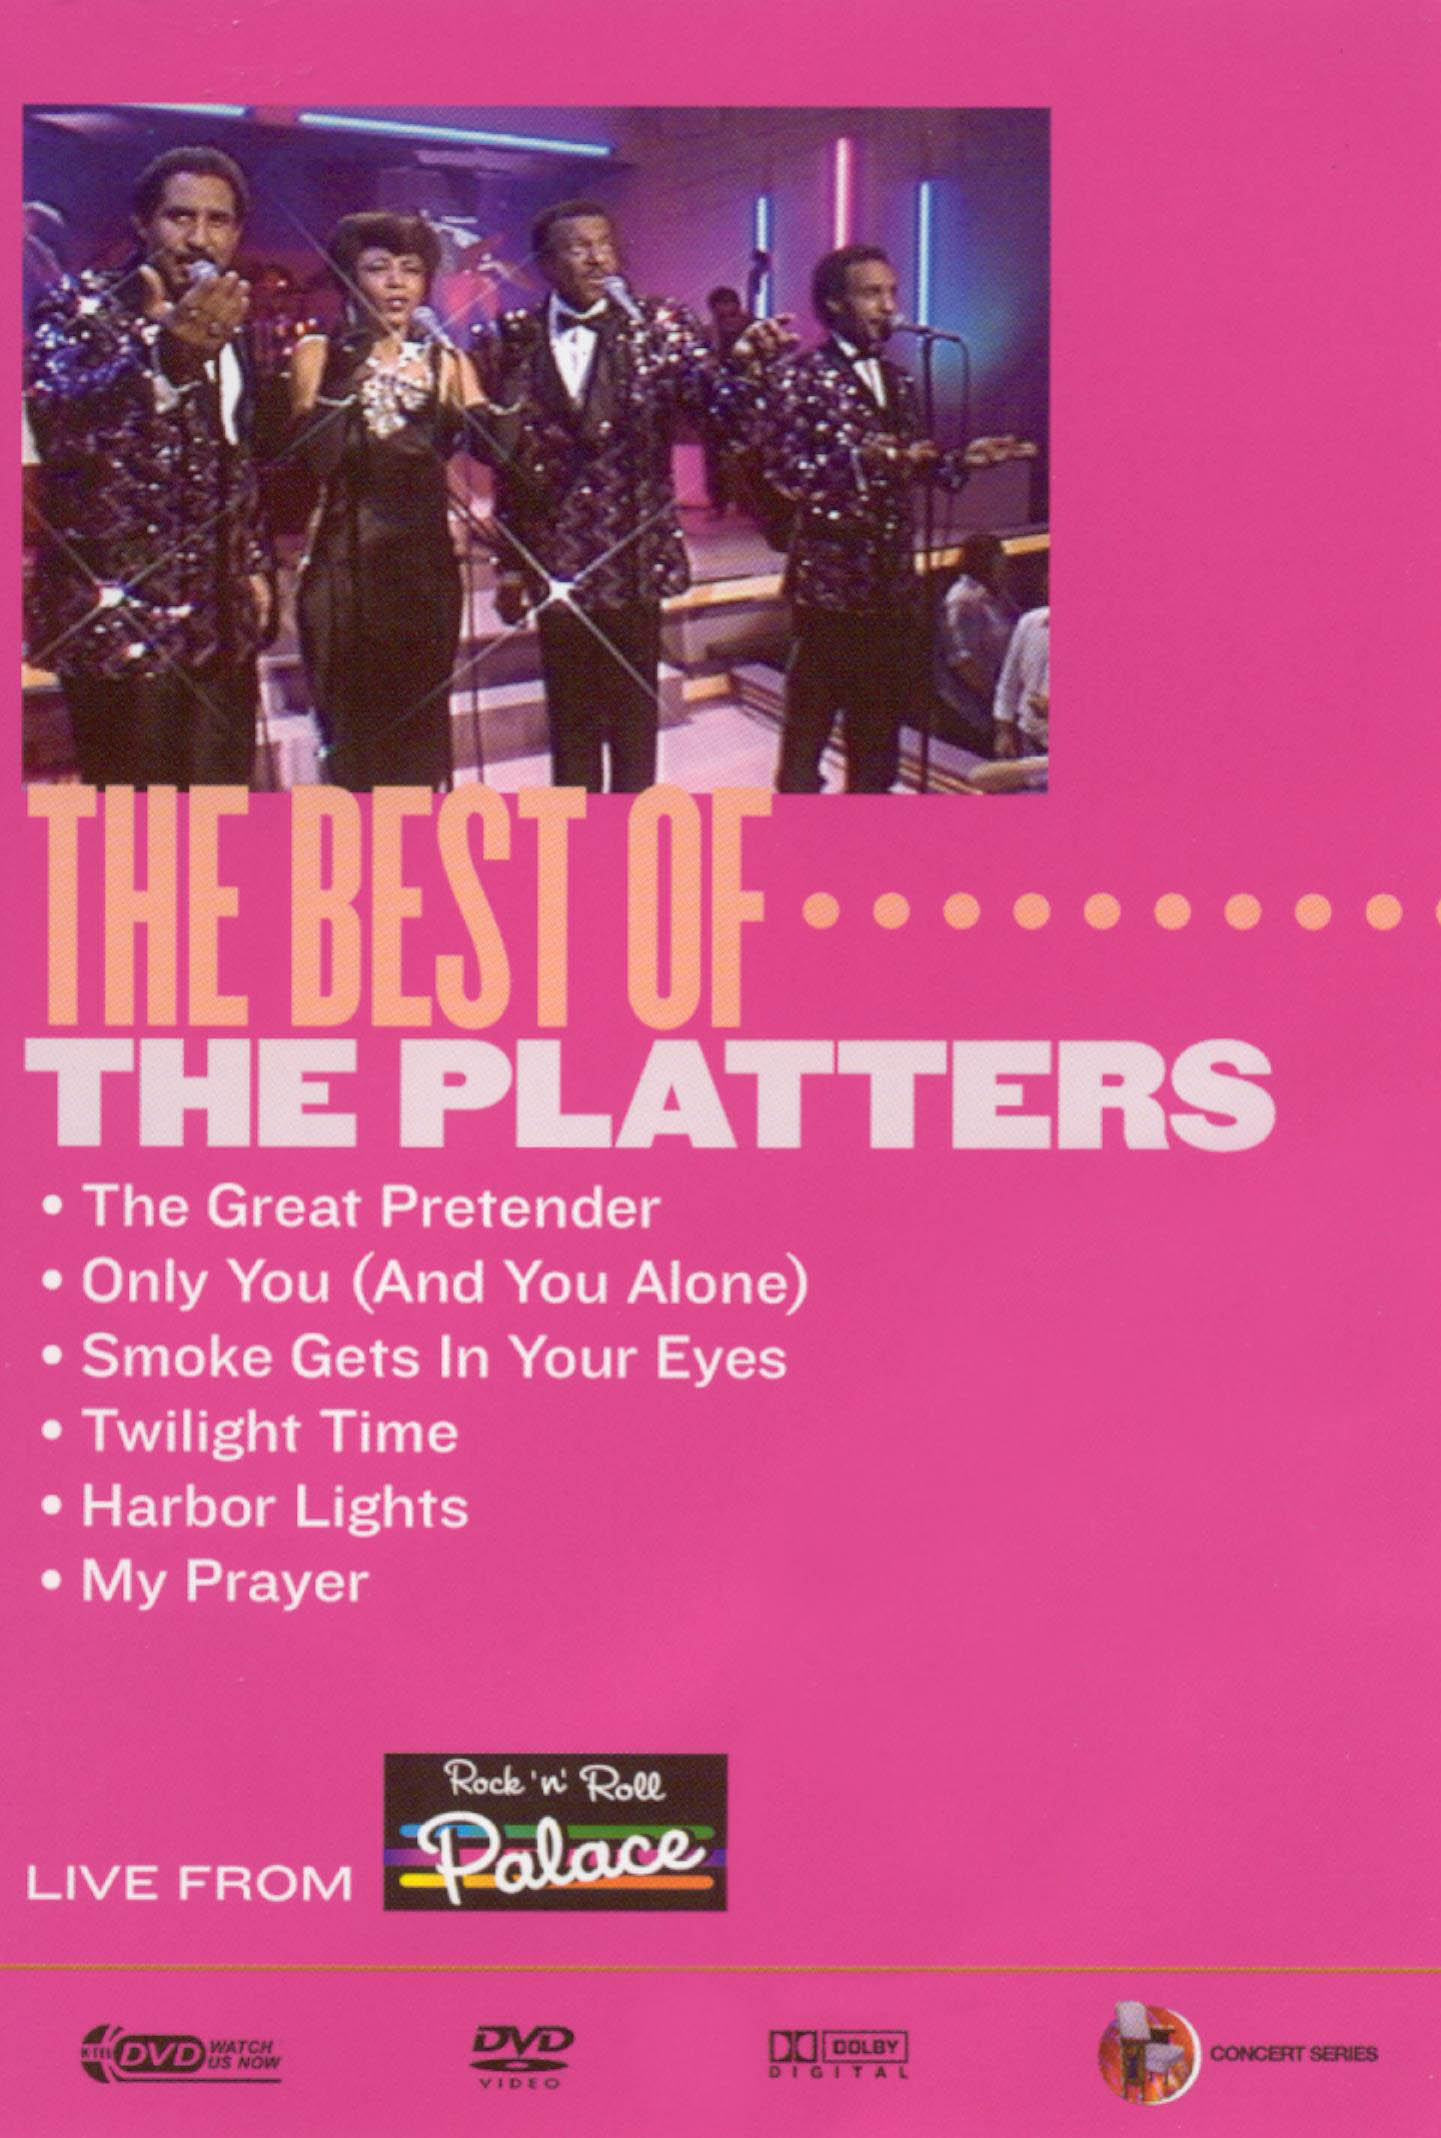 Live From Rock 'n' Roll Palace: The Best of The Platters